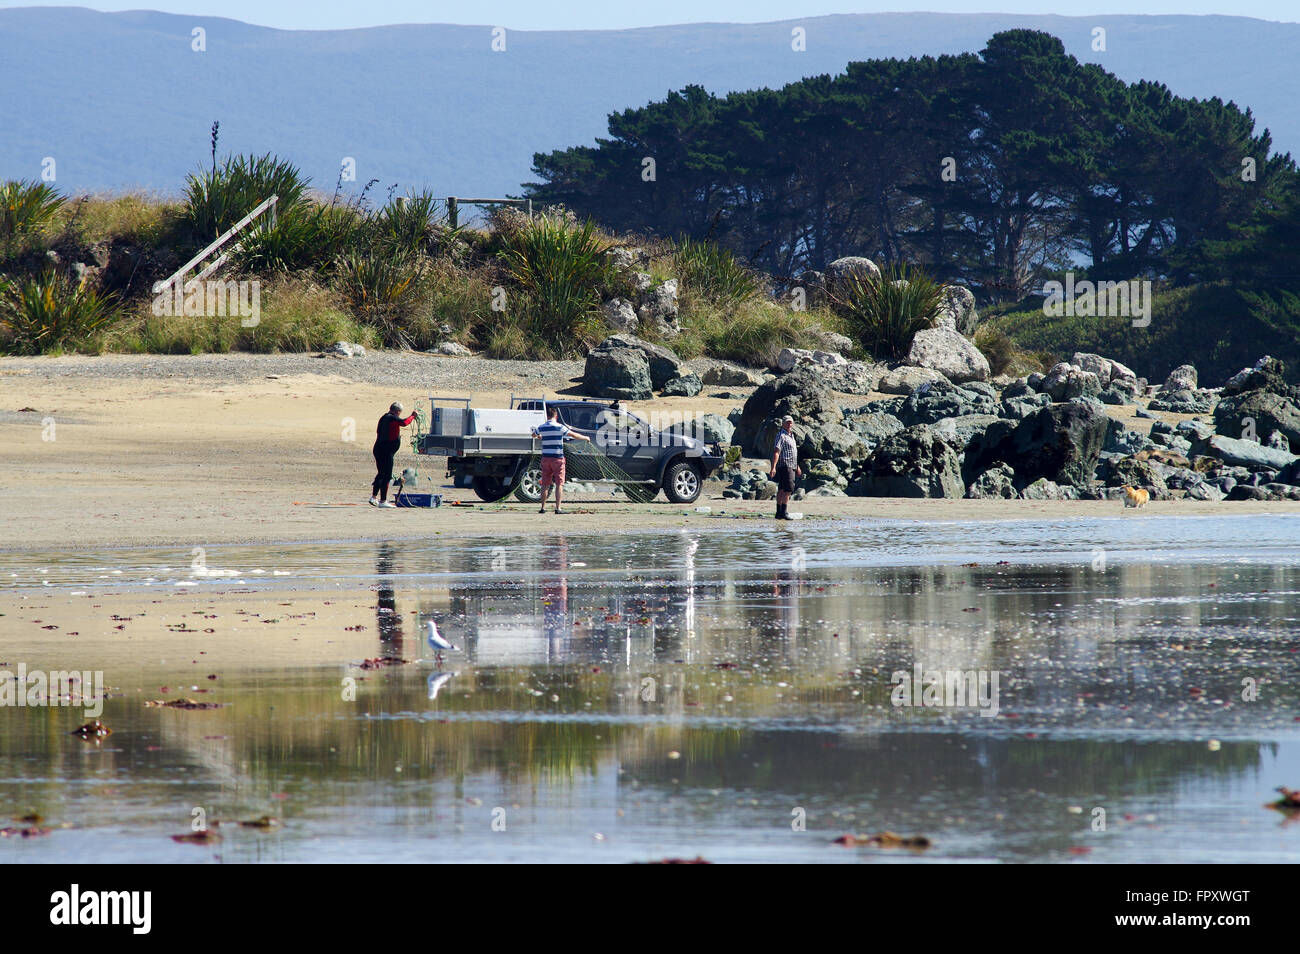 Preparations for floundering in Riverton, New Zealand - Stock Image